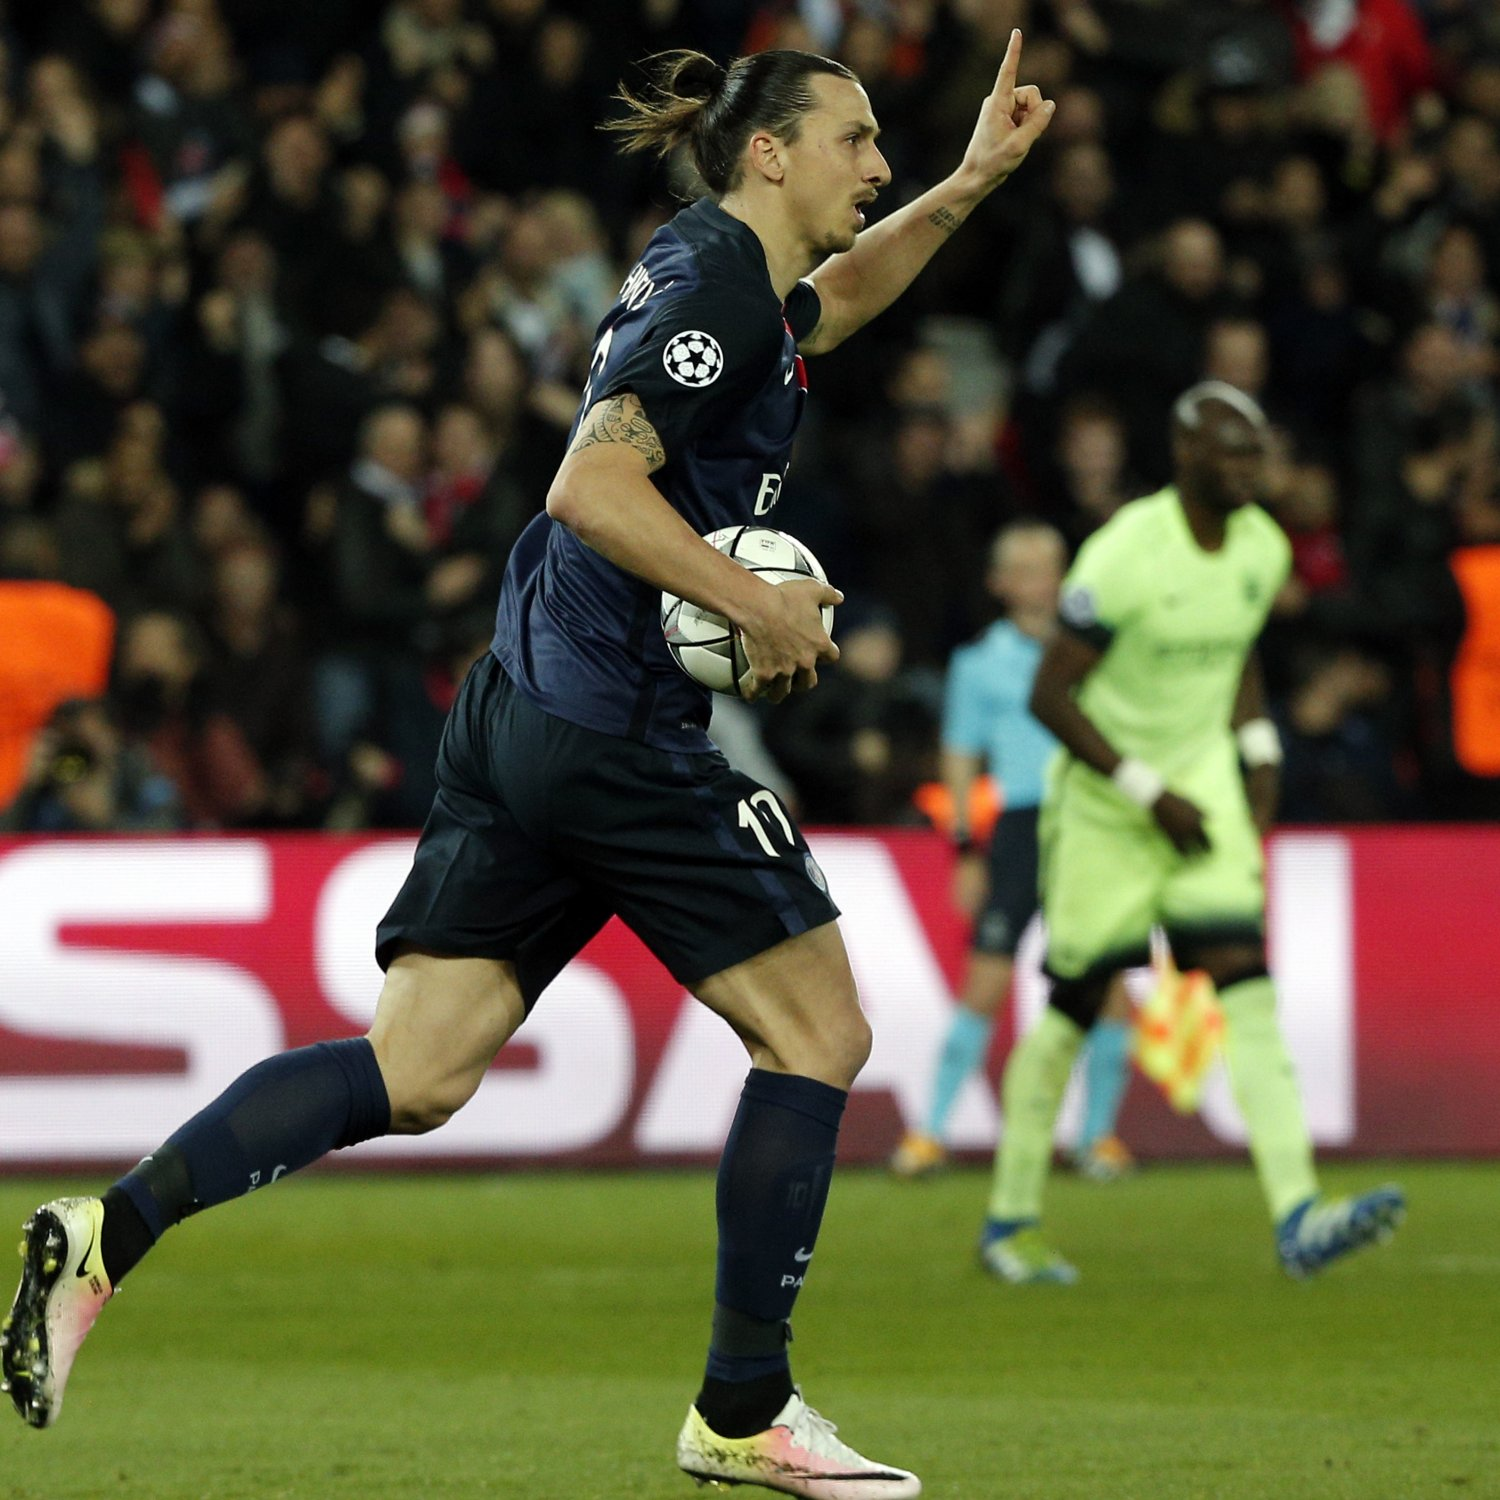 PSG Vs. Manchester City: Live Score, Highlights From